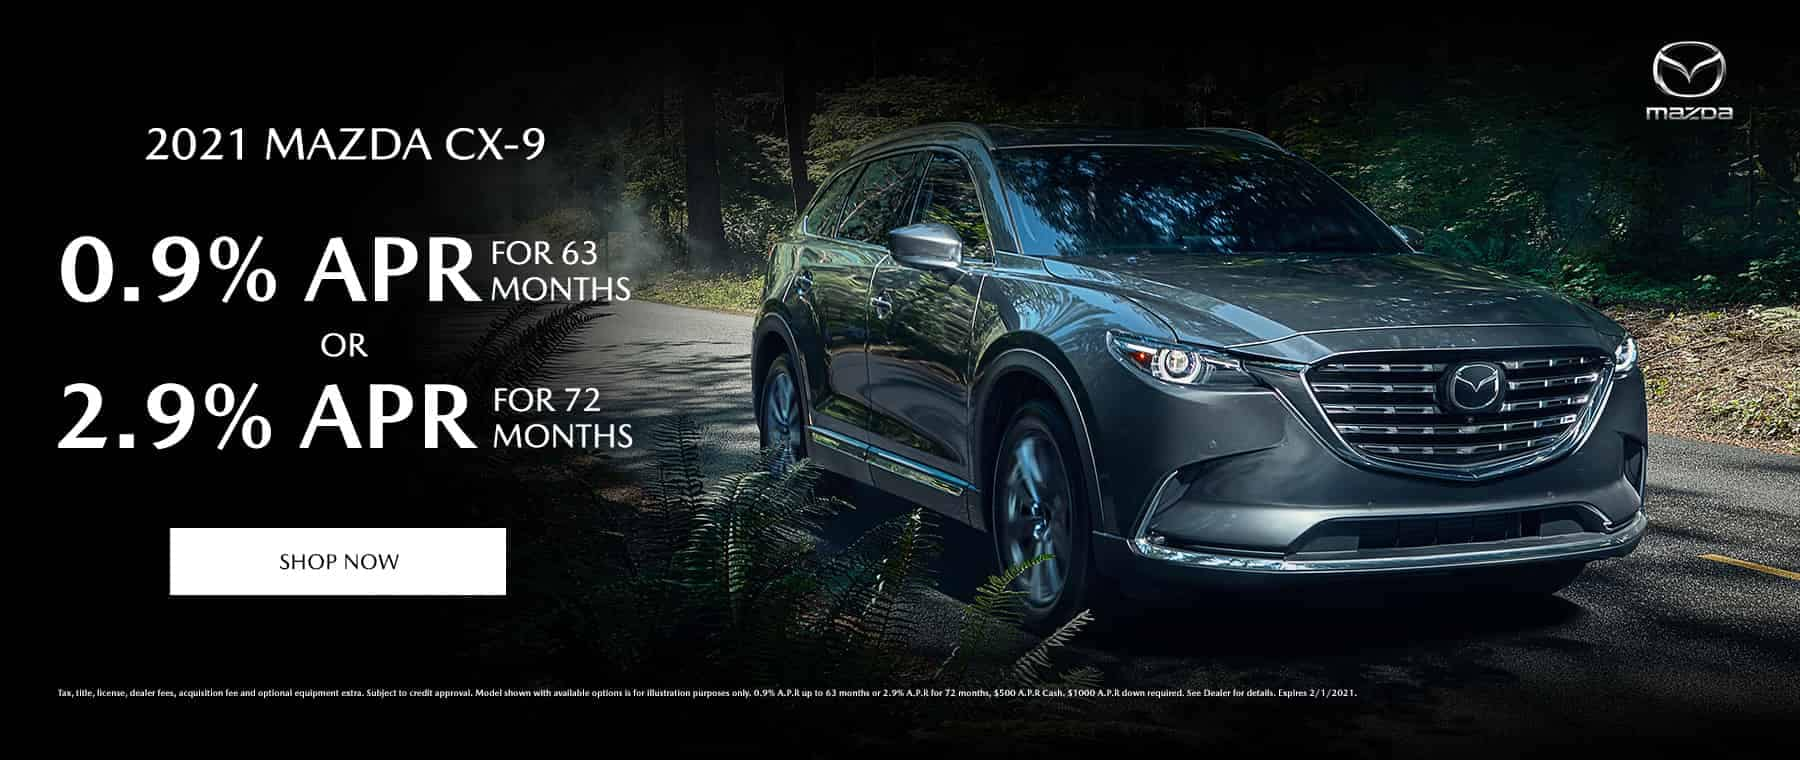 2020 Mazda CX-9 0.9% APR for 63 months or 2.9% APR for 72 months